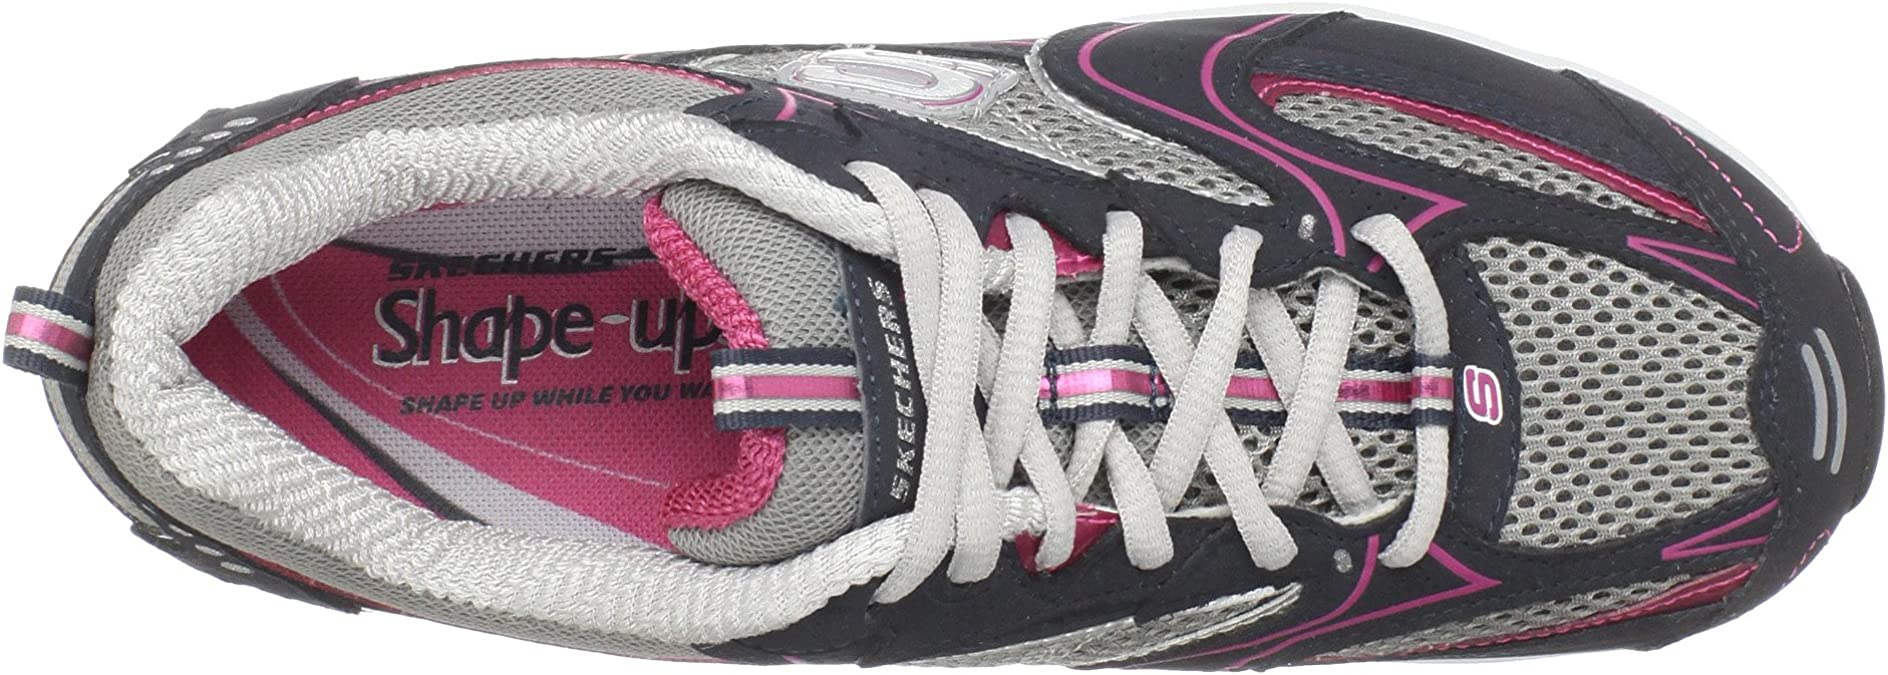 Skechers Shape ups XF Accelerators 12320 BKSL Baskets mode